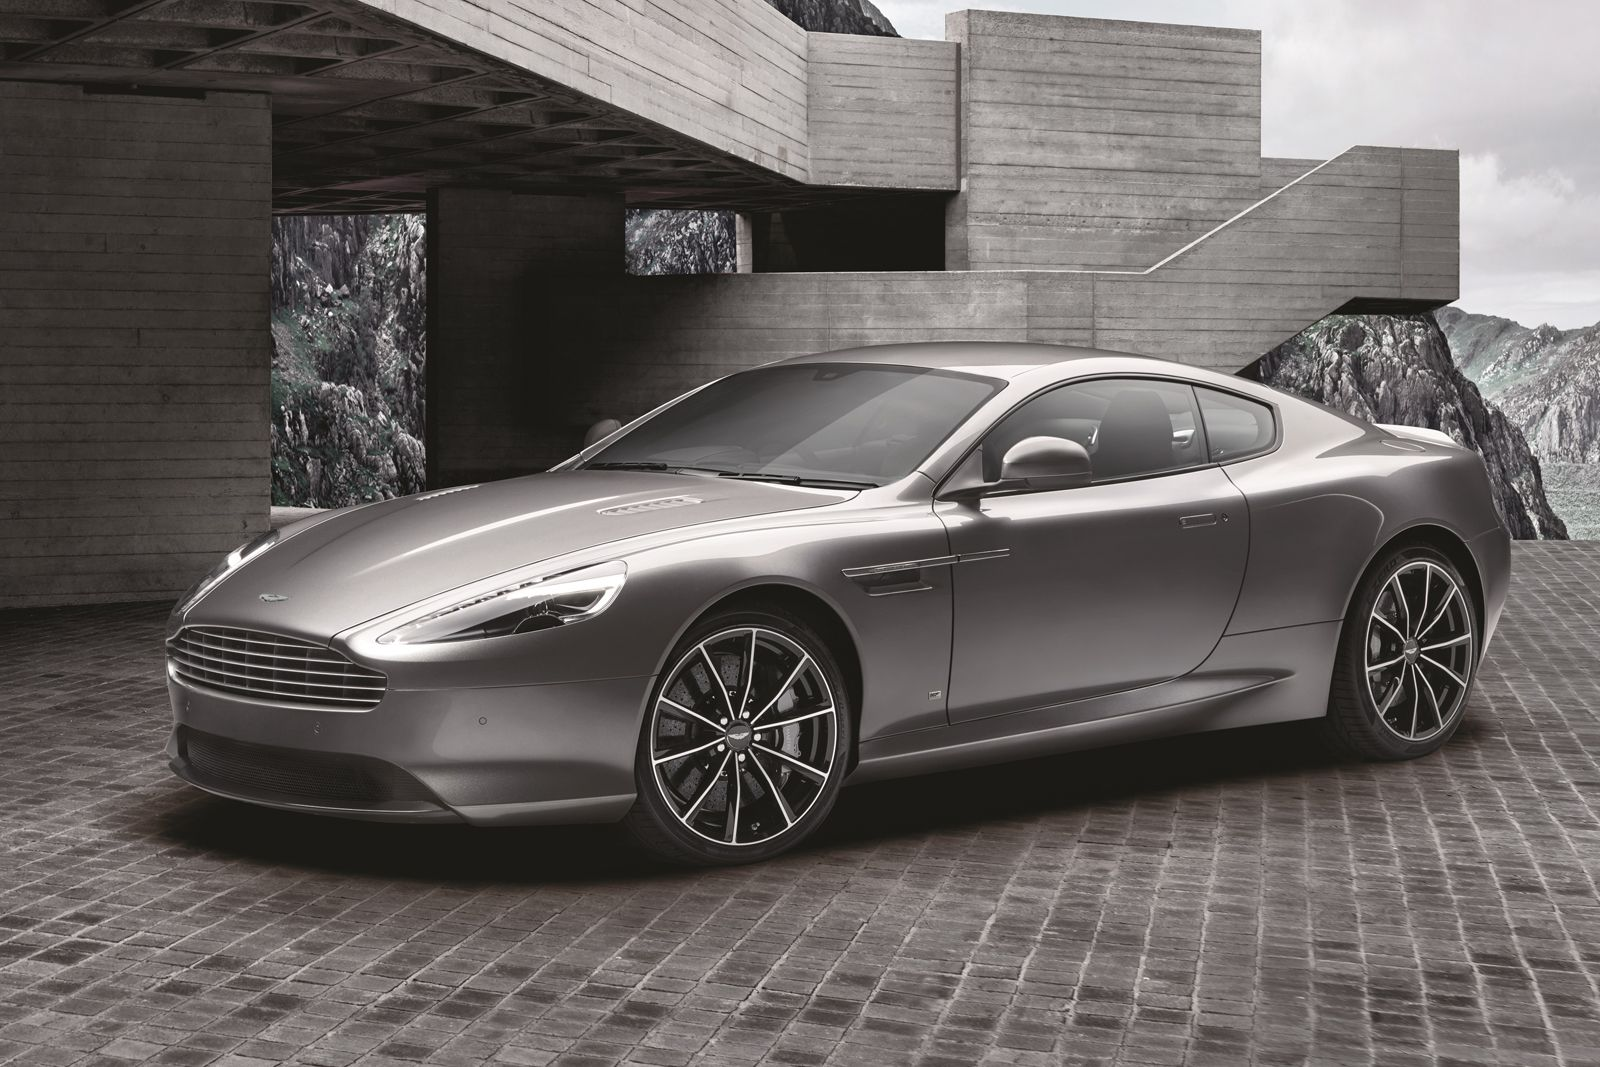 Aston Martin has waved goodbye to the DB9, as the final nine units have just rolled off the assembly line.